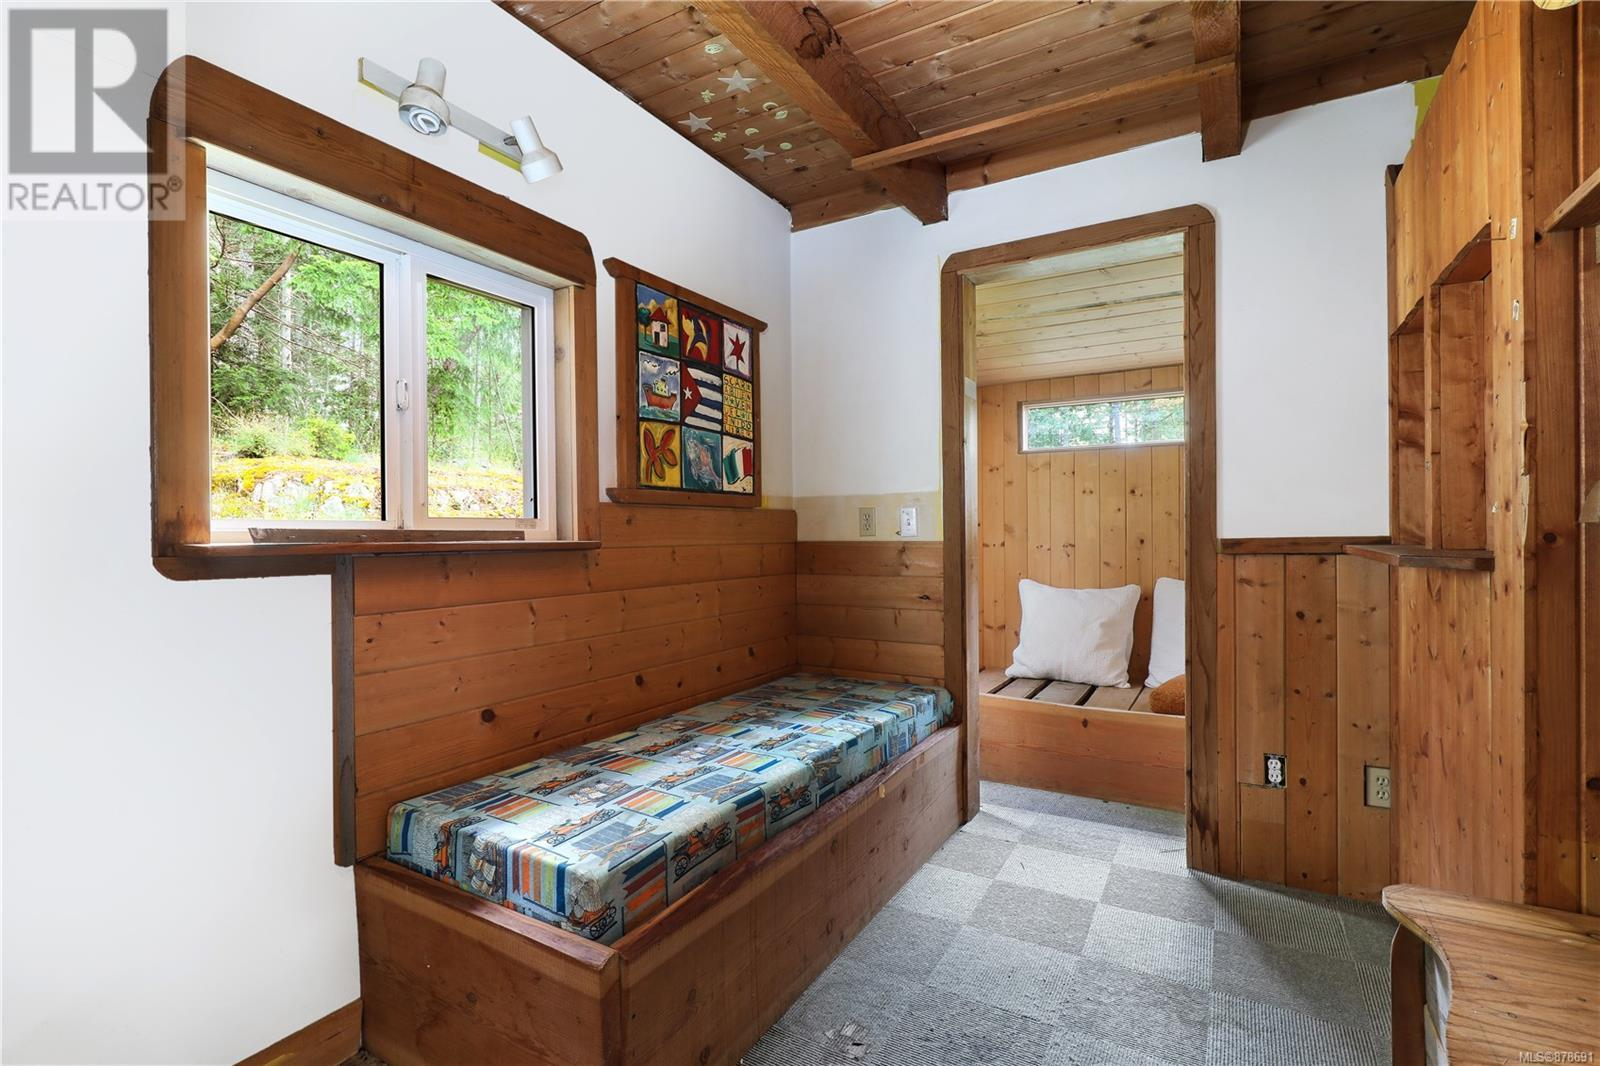 MLS® #878691 - Cortes Island House For sale Image #42